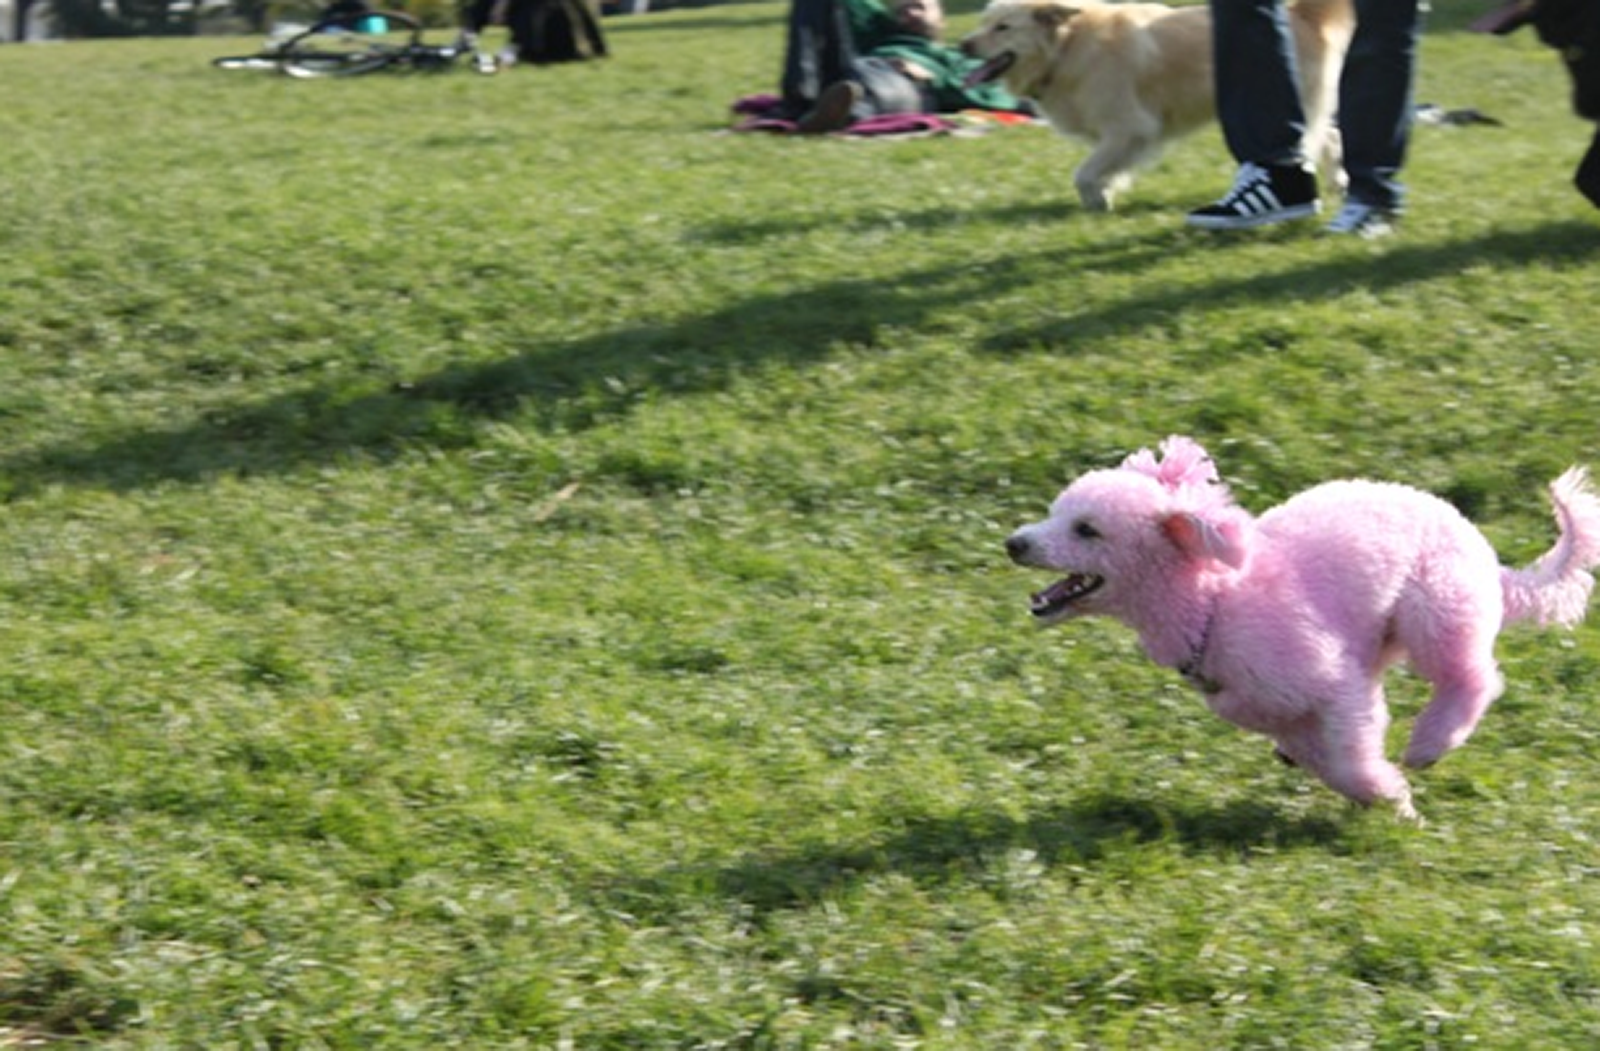 Drugs and Dogs – It's Summer in Dolores Park